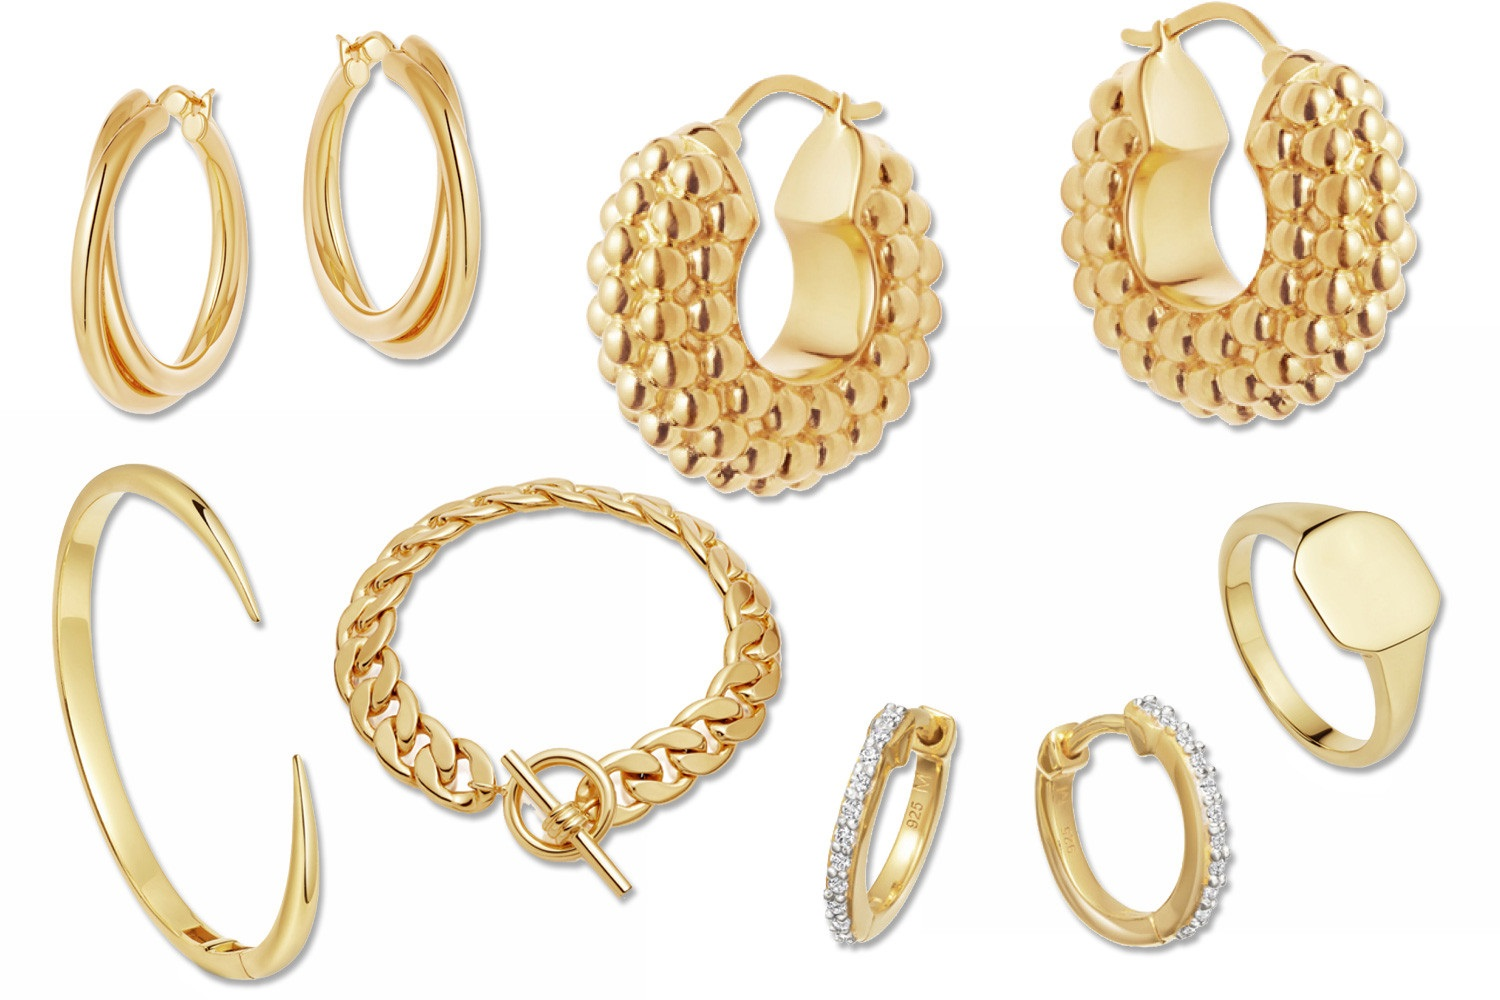 Sports related jewelry – how to choose items for game day